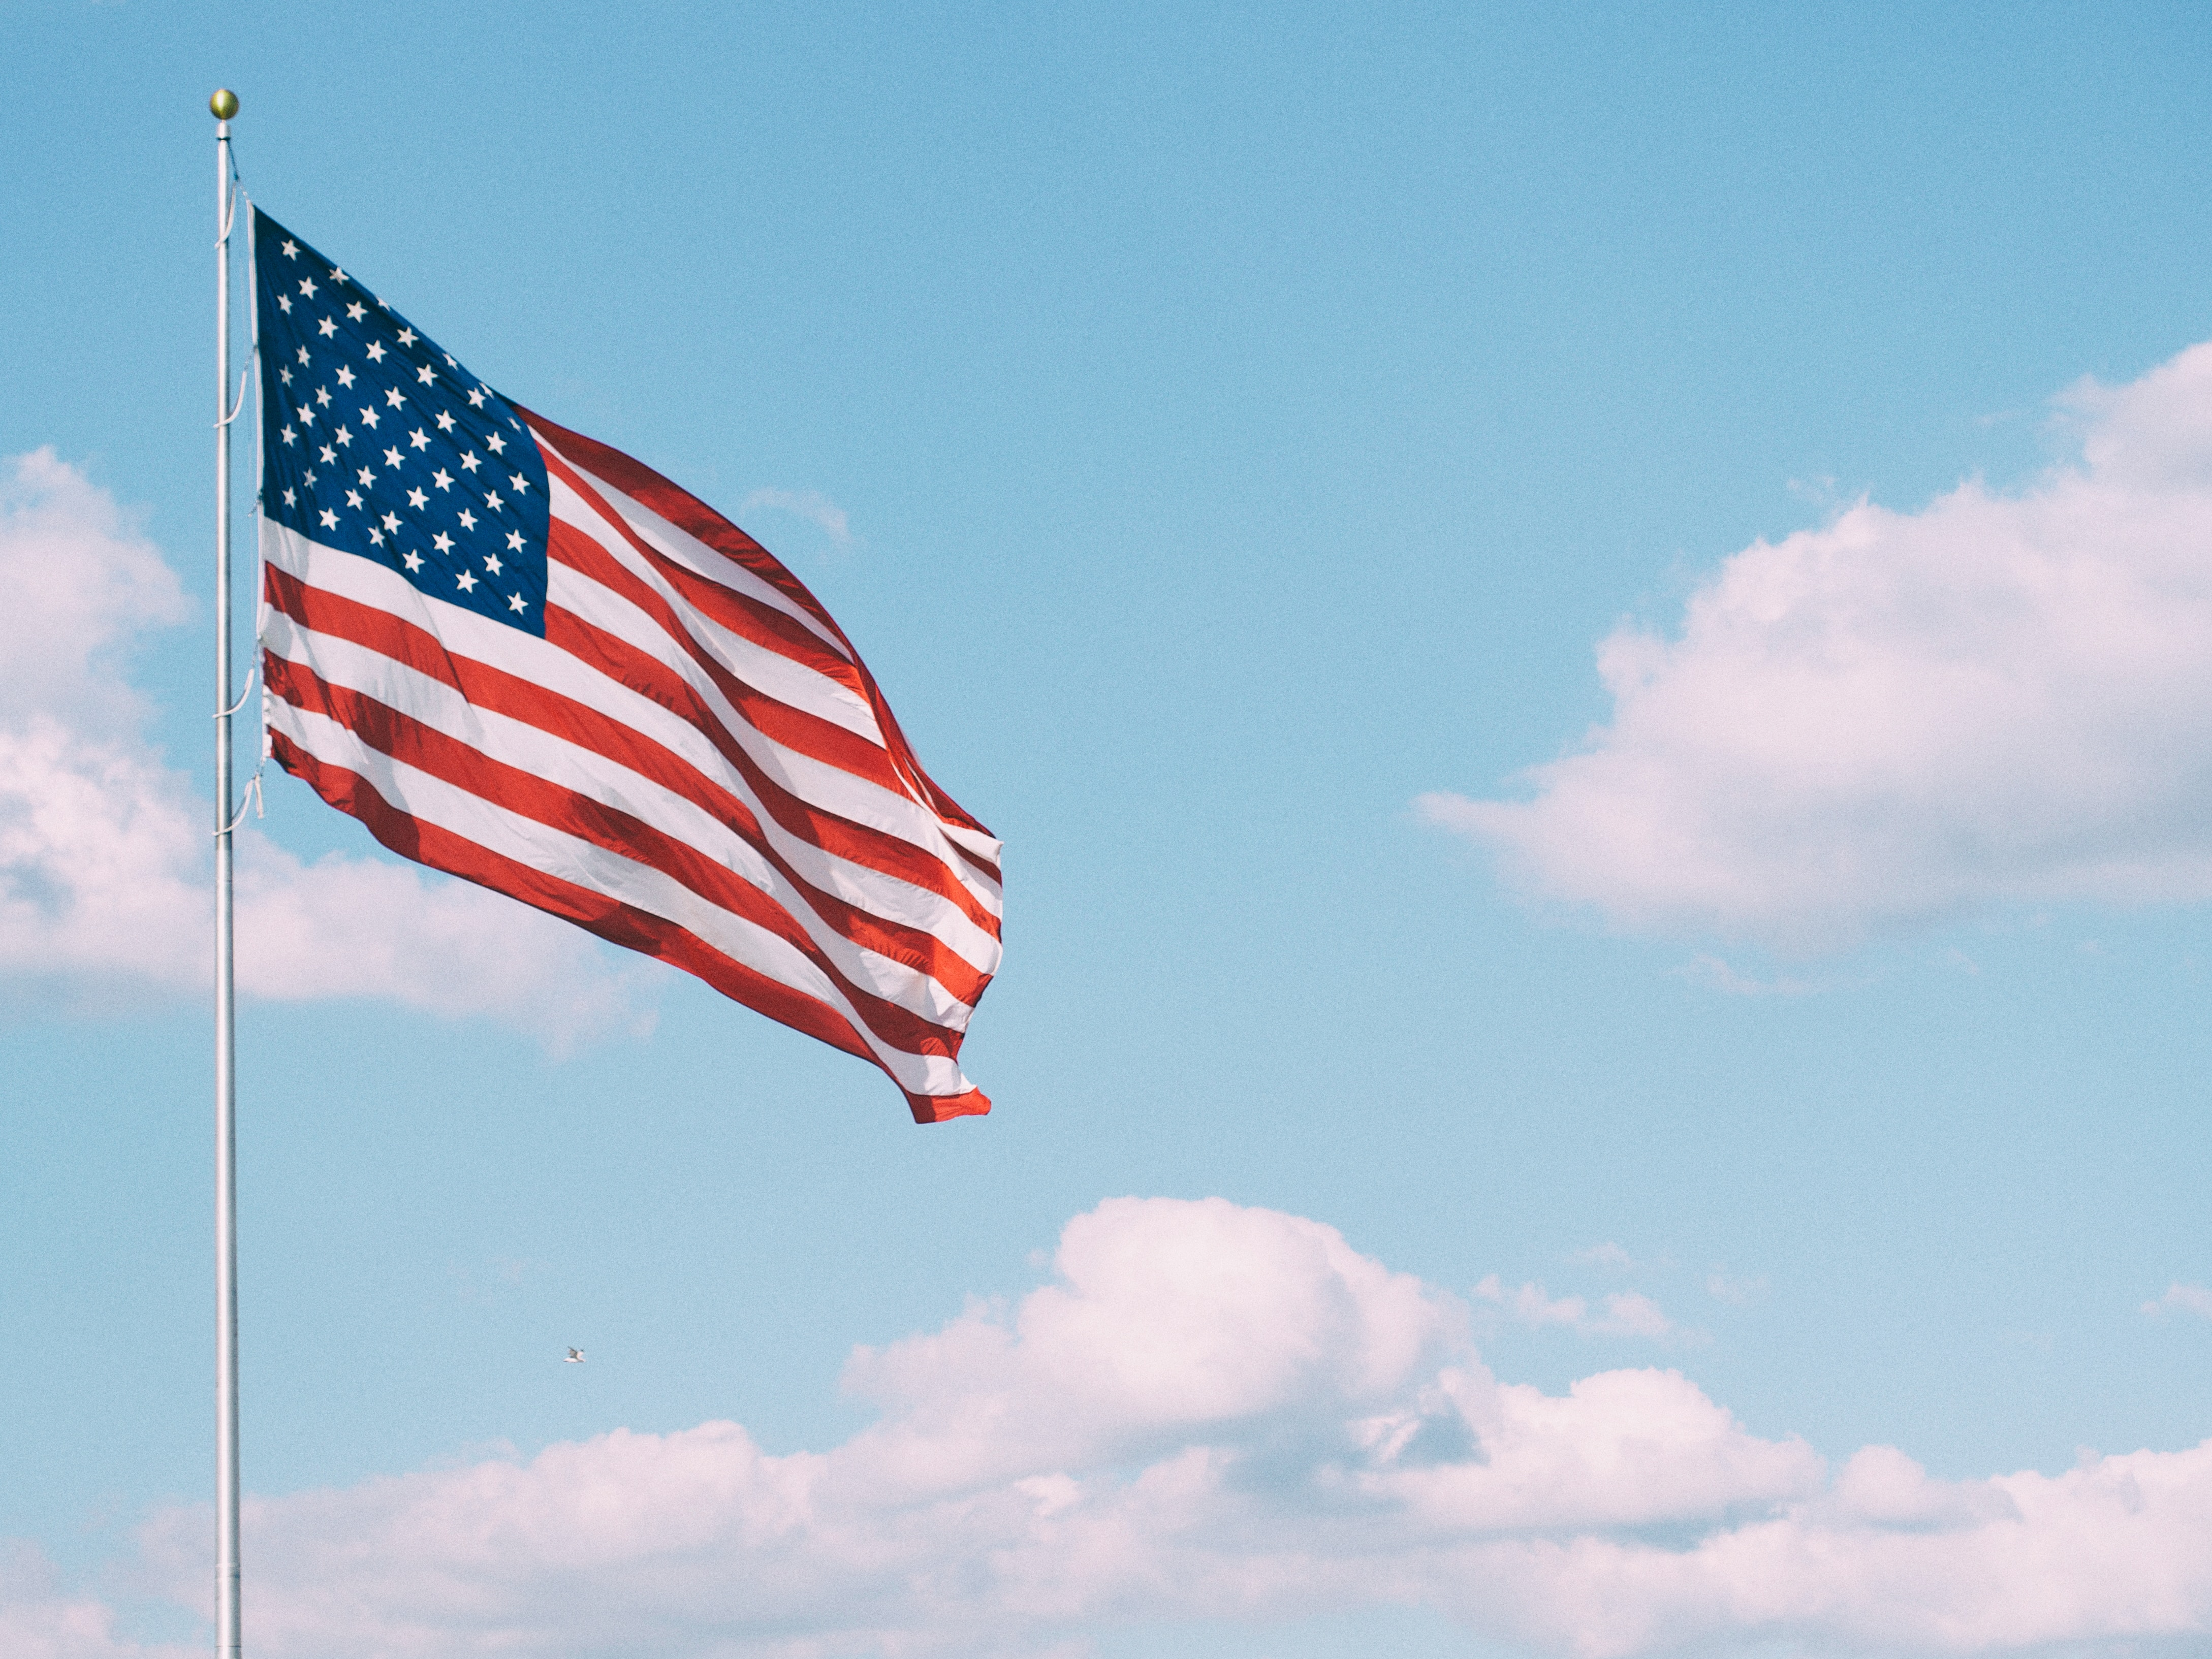 American Flag with a blue sky in the background.